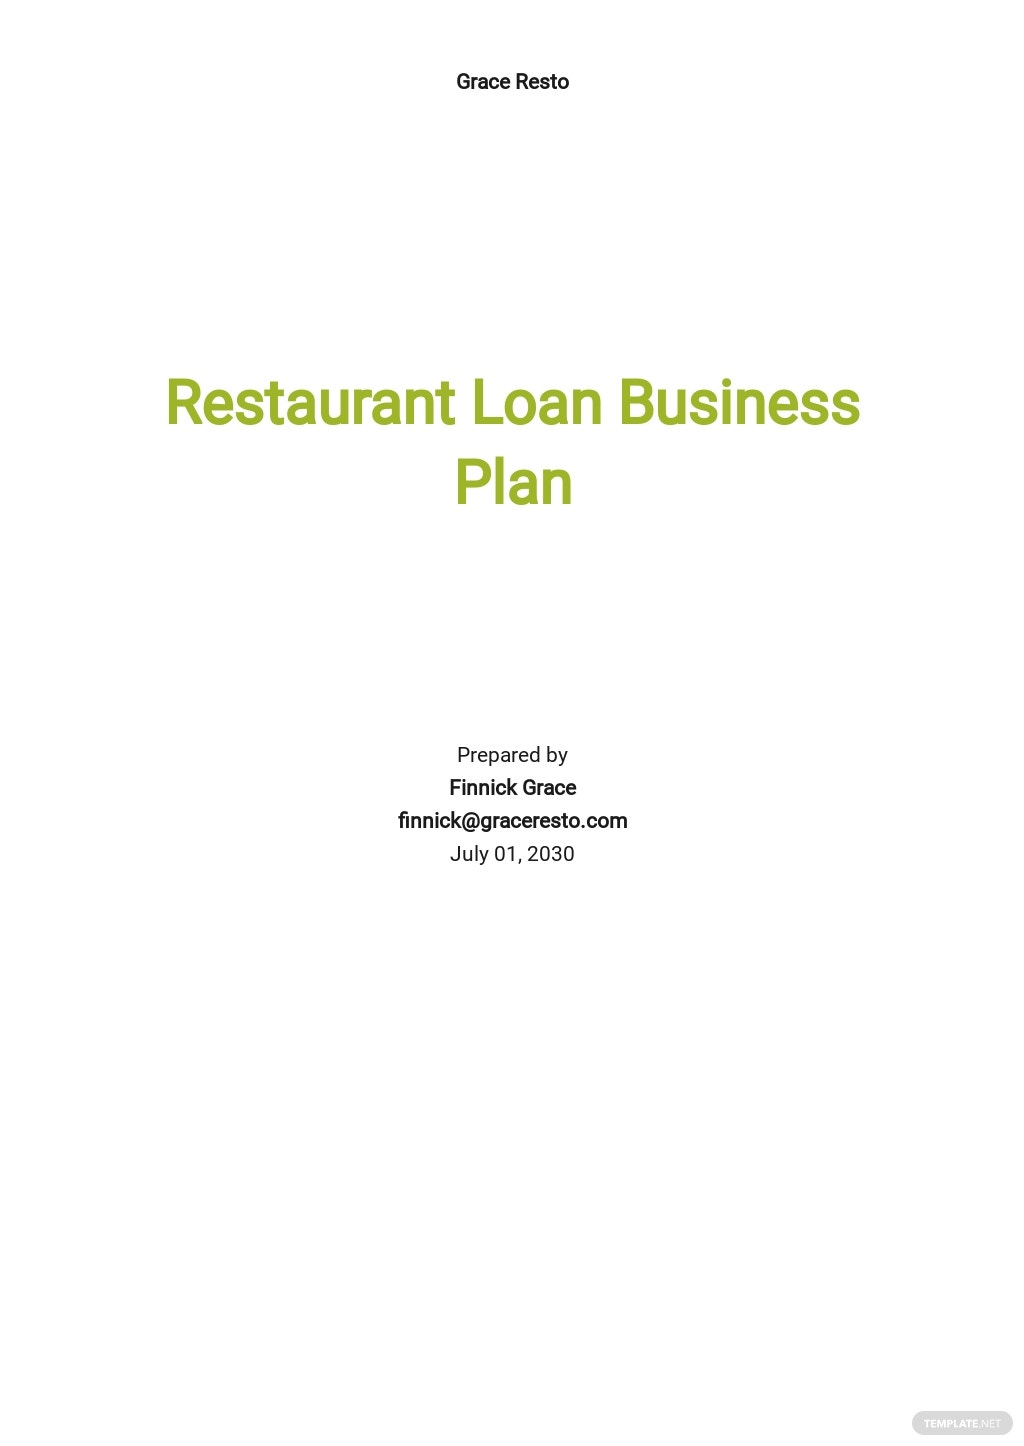 Restaurant Business Plan To Get A Loan Template